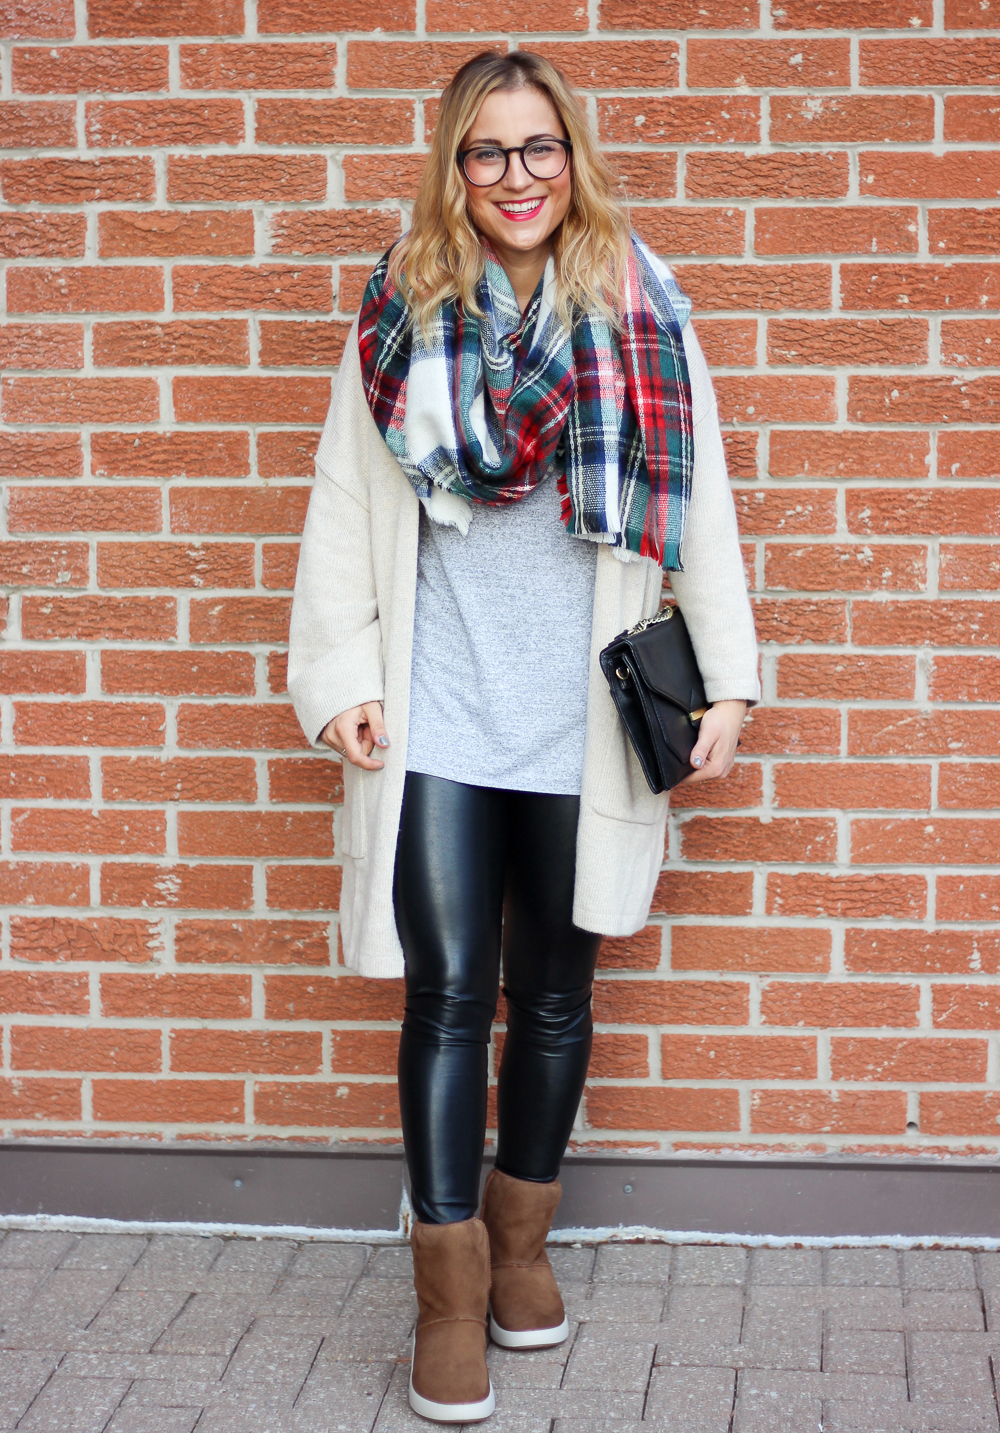 Canadian fashion, beauty and lifestyle blogger, Jackie Goldhar from Something About That, wears a plaid blanket scarf, Cardigan from Gap, Wilfred Free Daria leggings from Aritzia and Ecco Ukiuk Boots